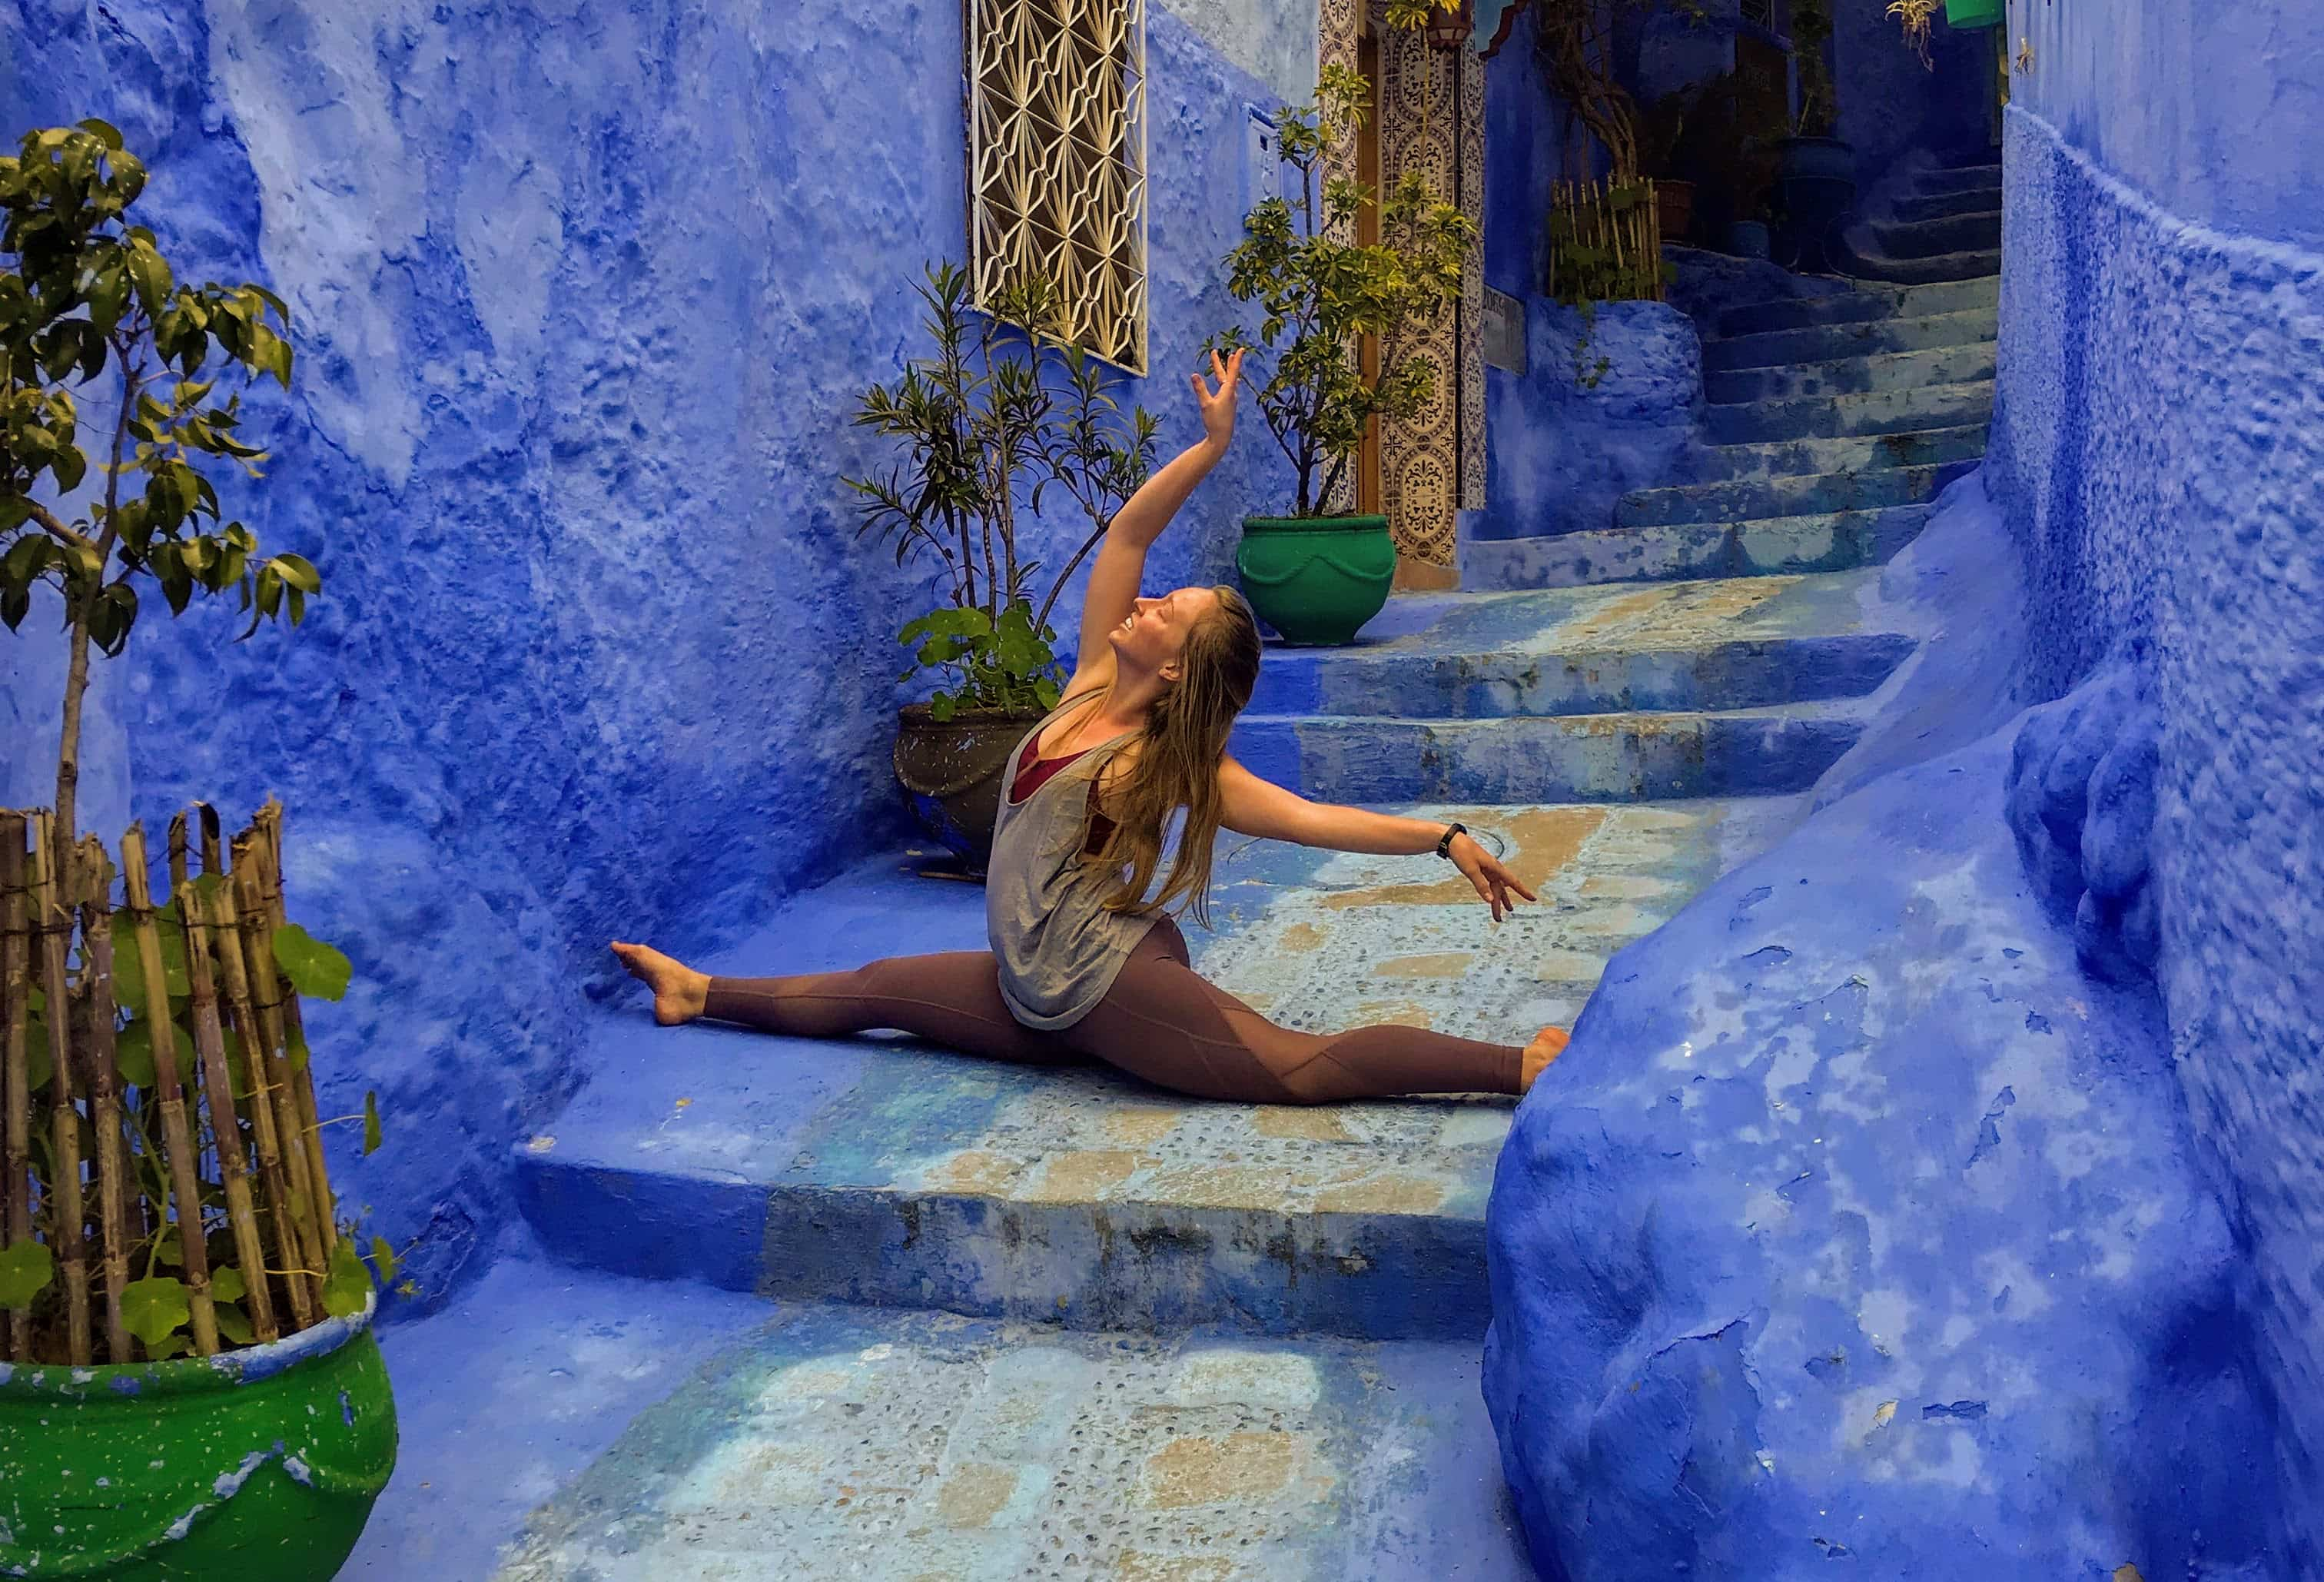 Brittney Martinson in Chefchaouen, Morocco